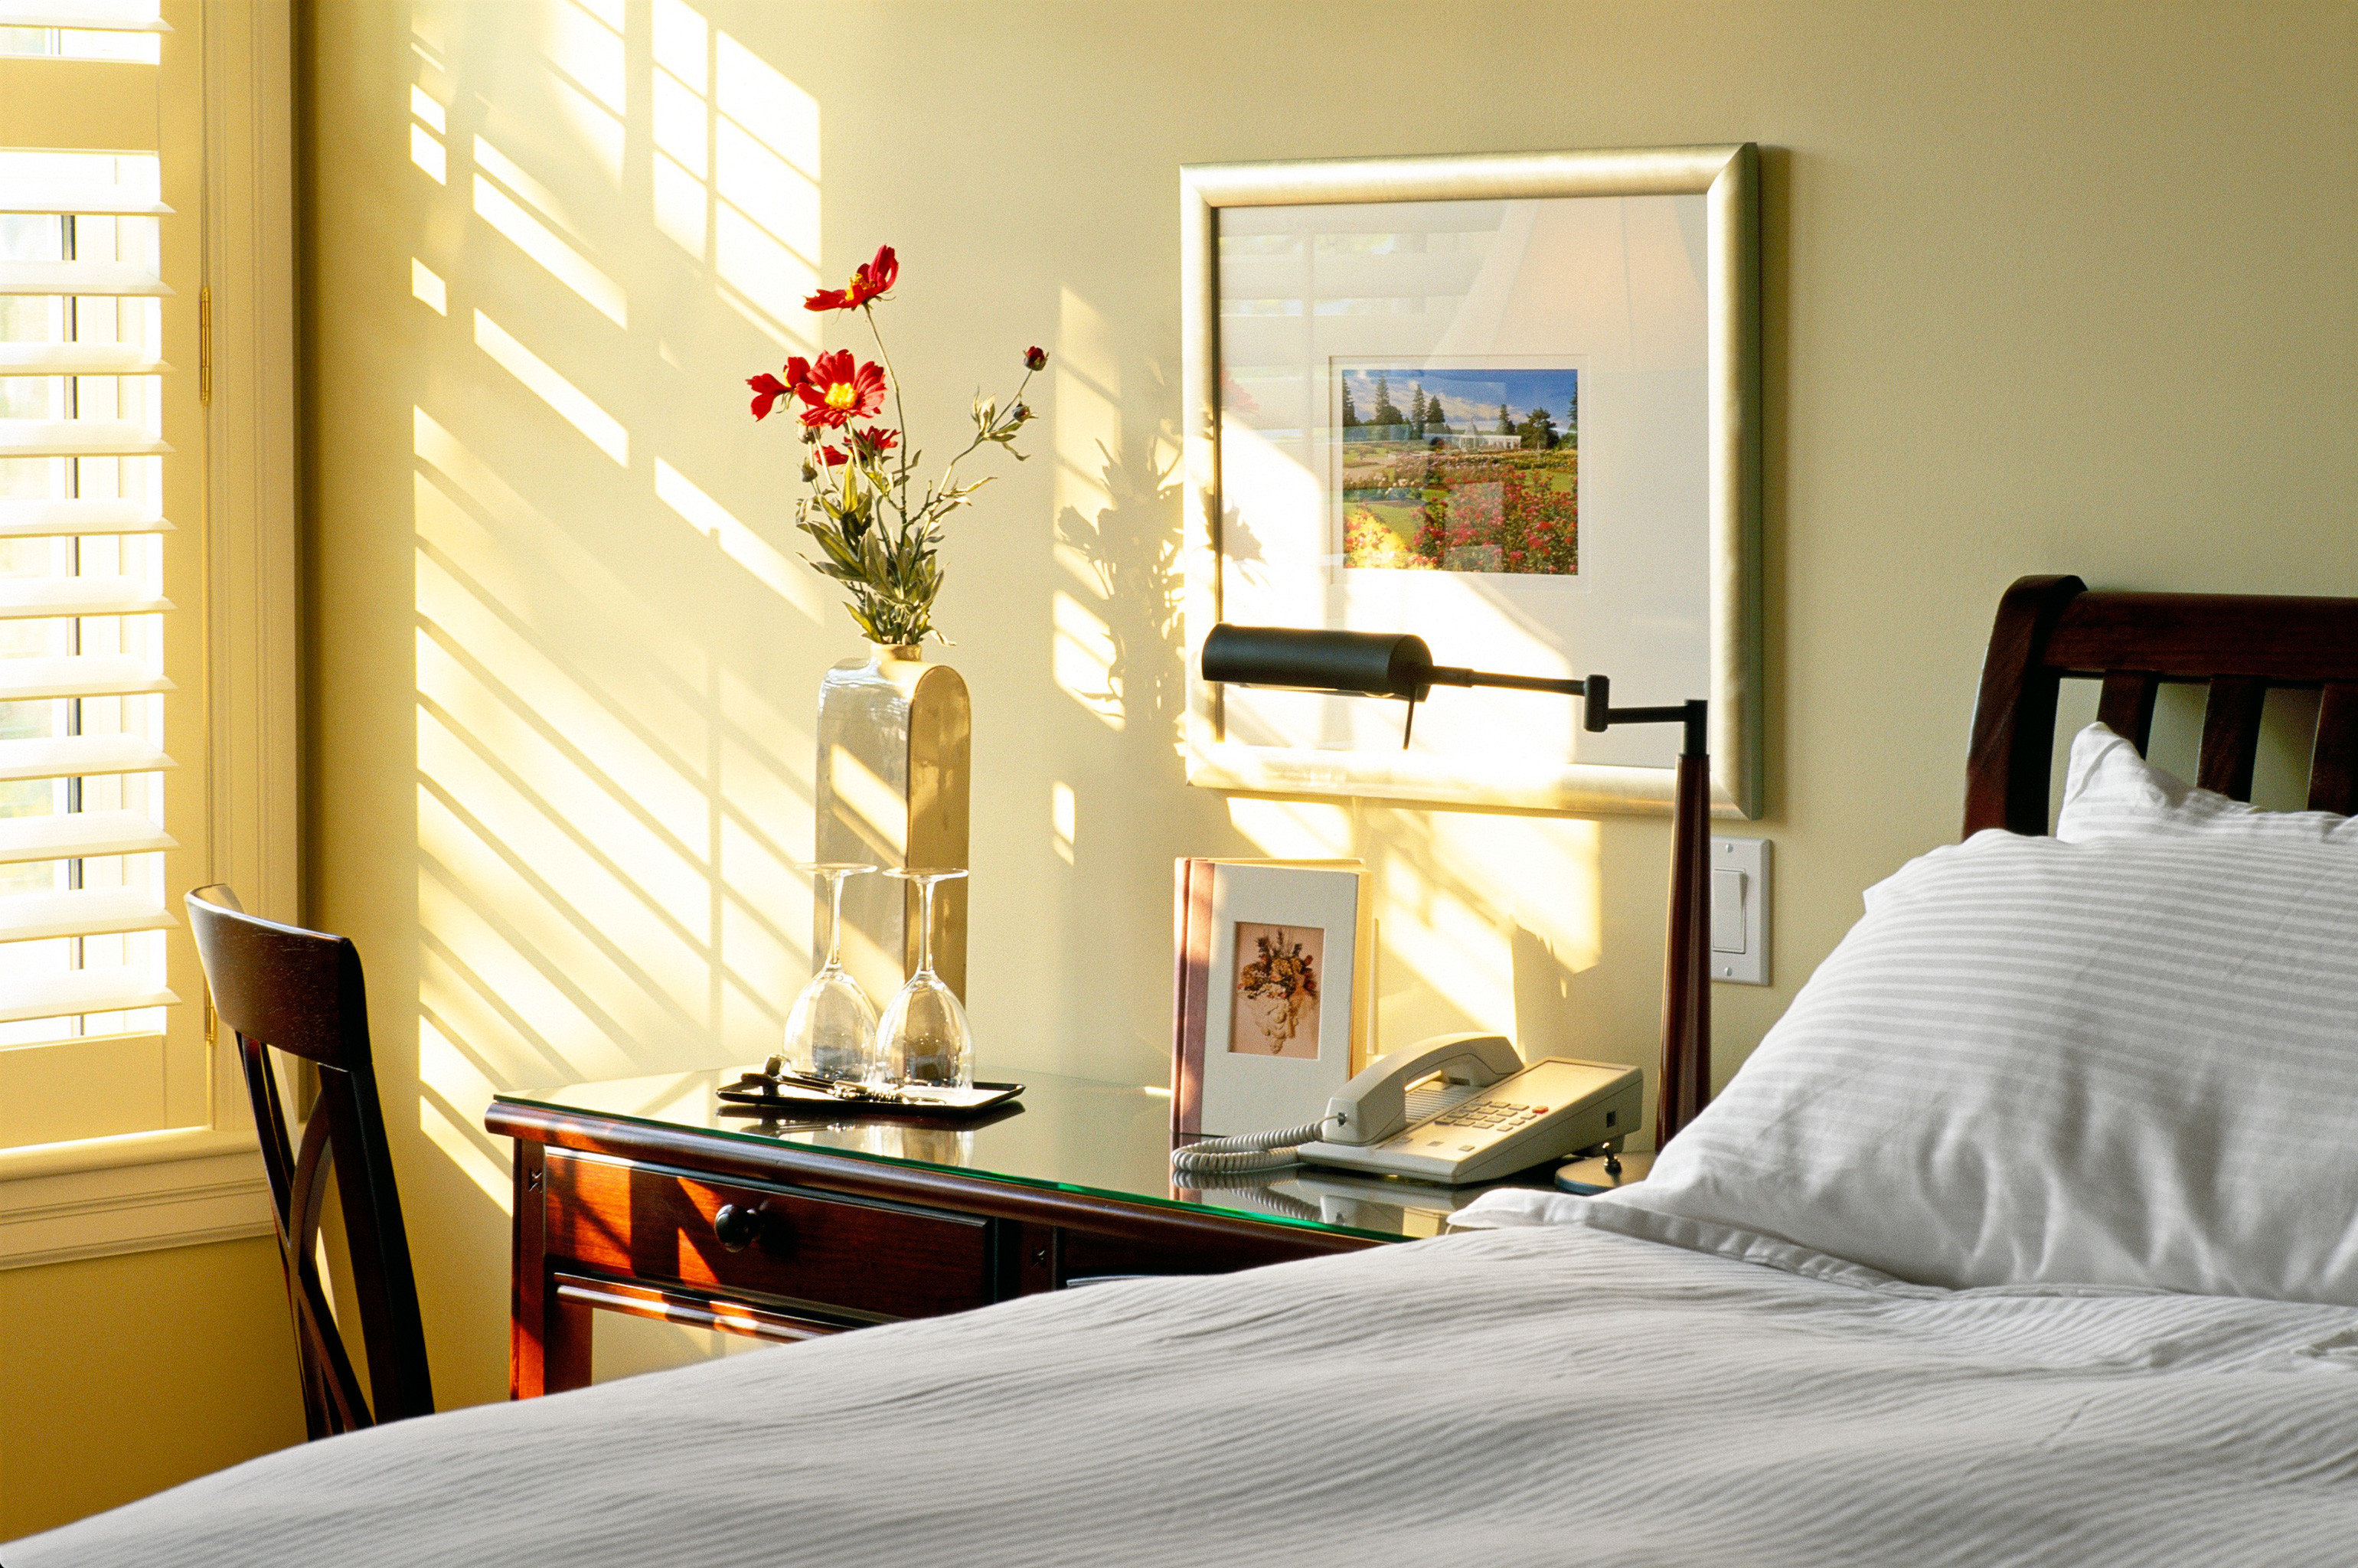 Bedroom Hotels Luxury Romance Romantic Rustic Scenic views home living room bed sheet Suite